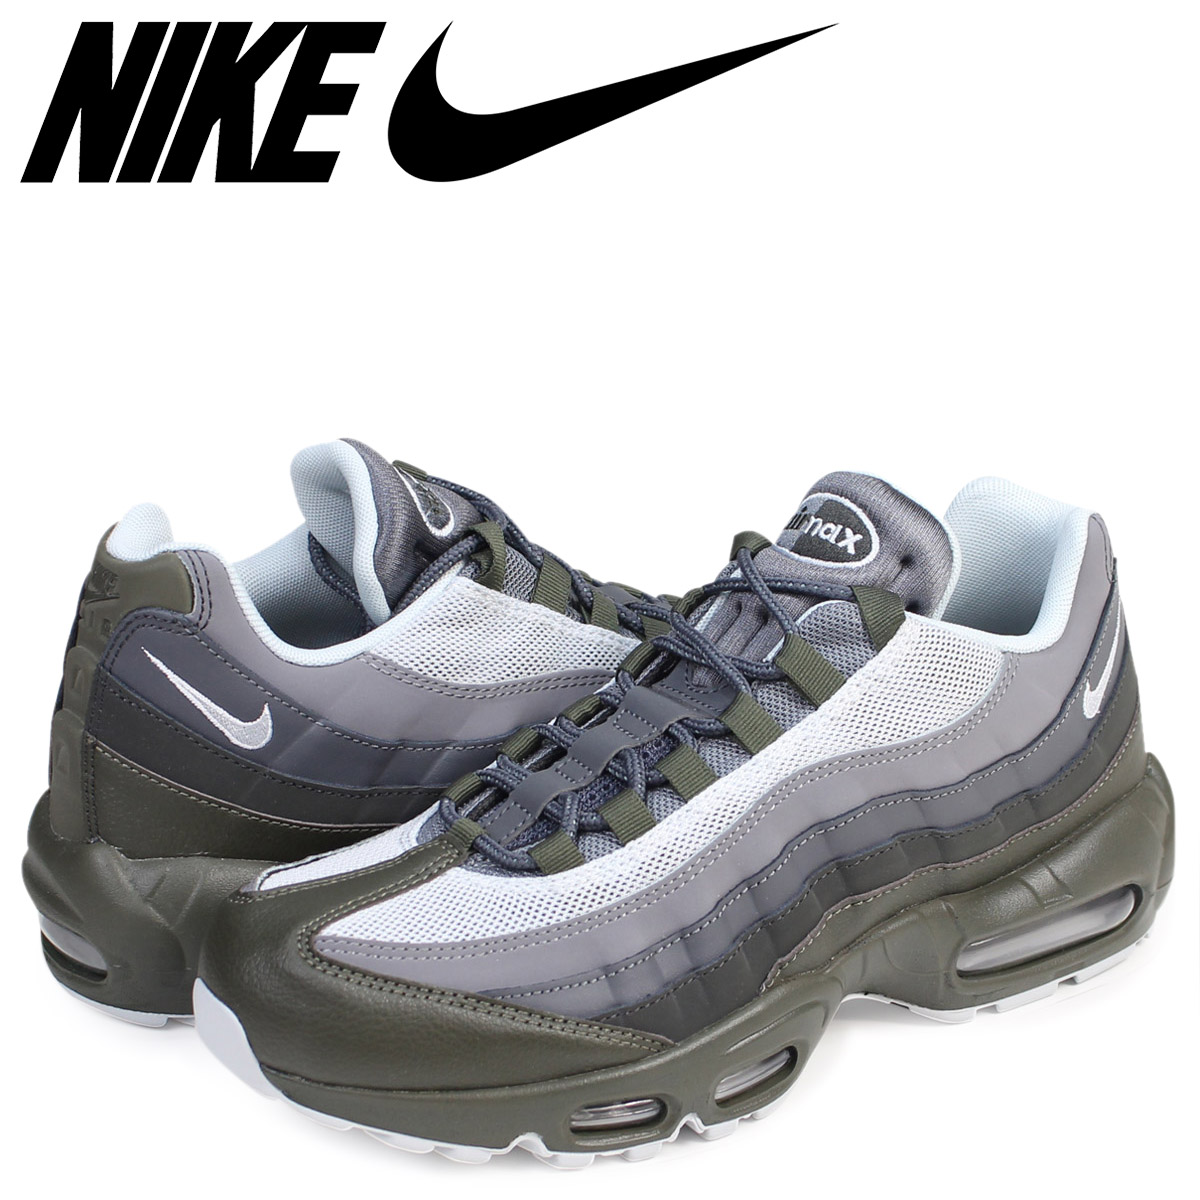 c7c42b2ec5a4 Whats up Sports  Nike NIKE Air Max 95 essential sneakers AIR MAX 95 ...